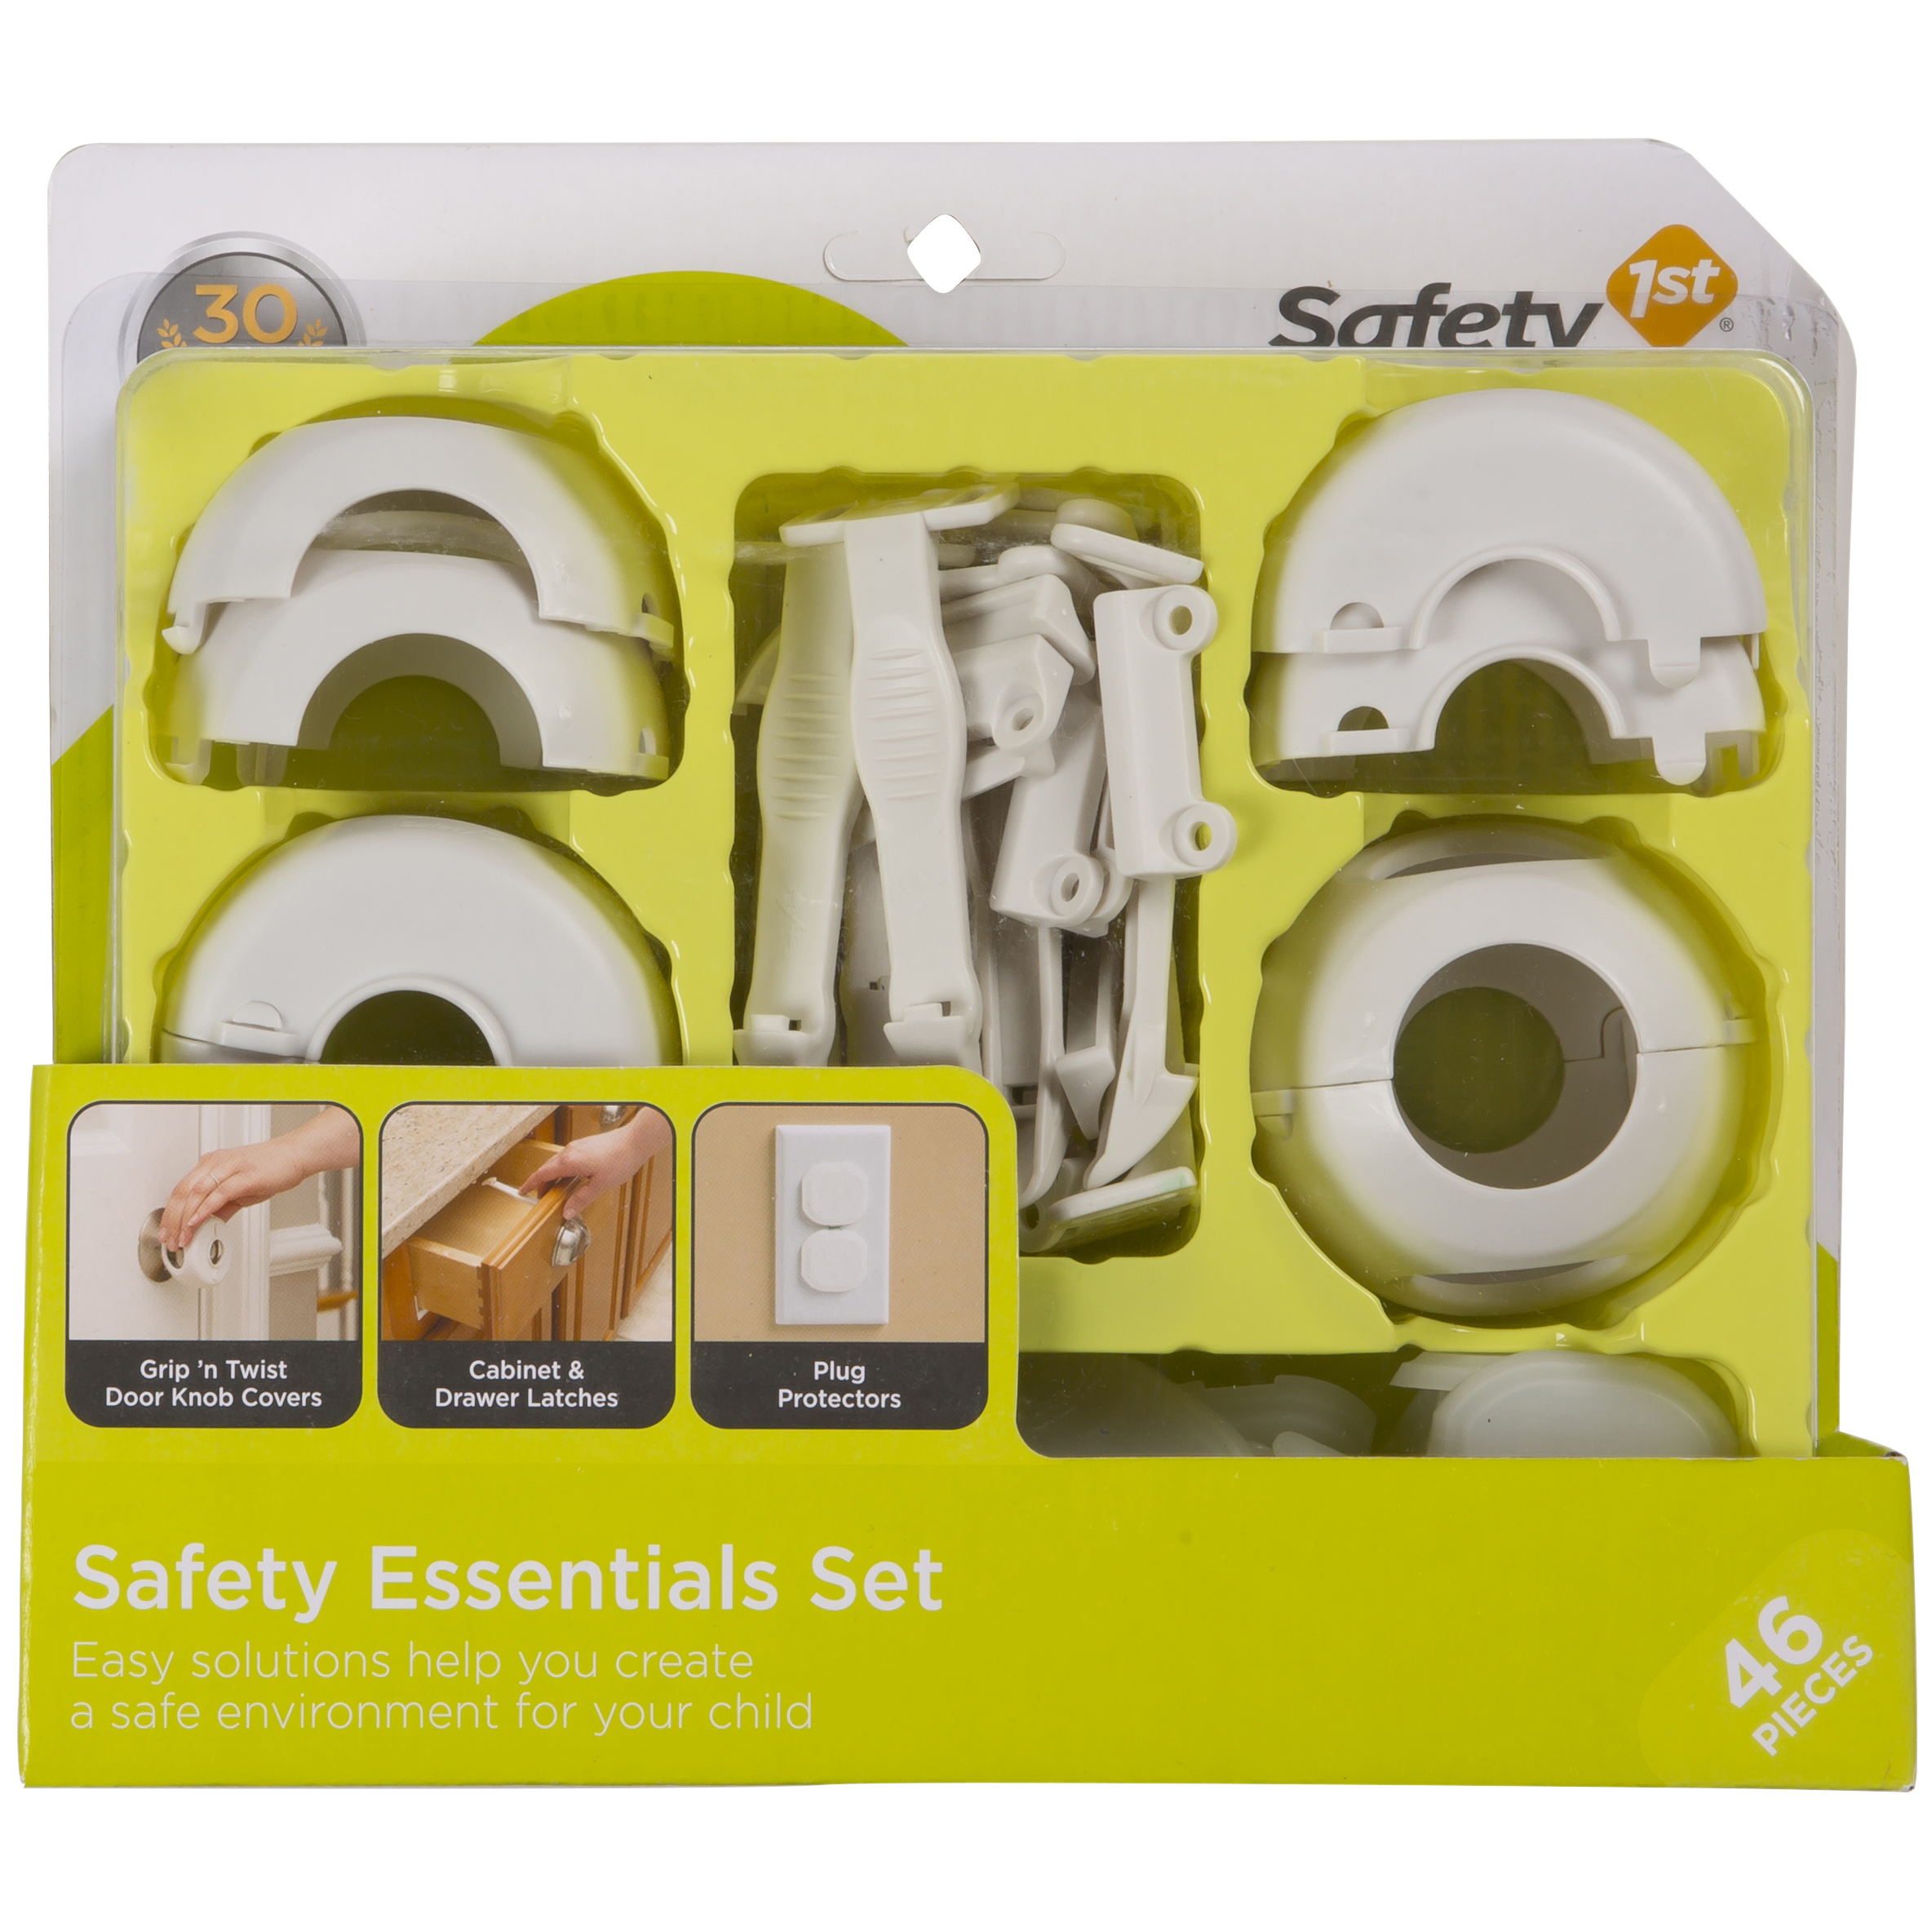 Safety 1ˢᵗ Safety Essentials Kit (46 Pcs), White